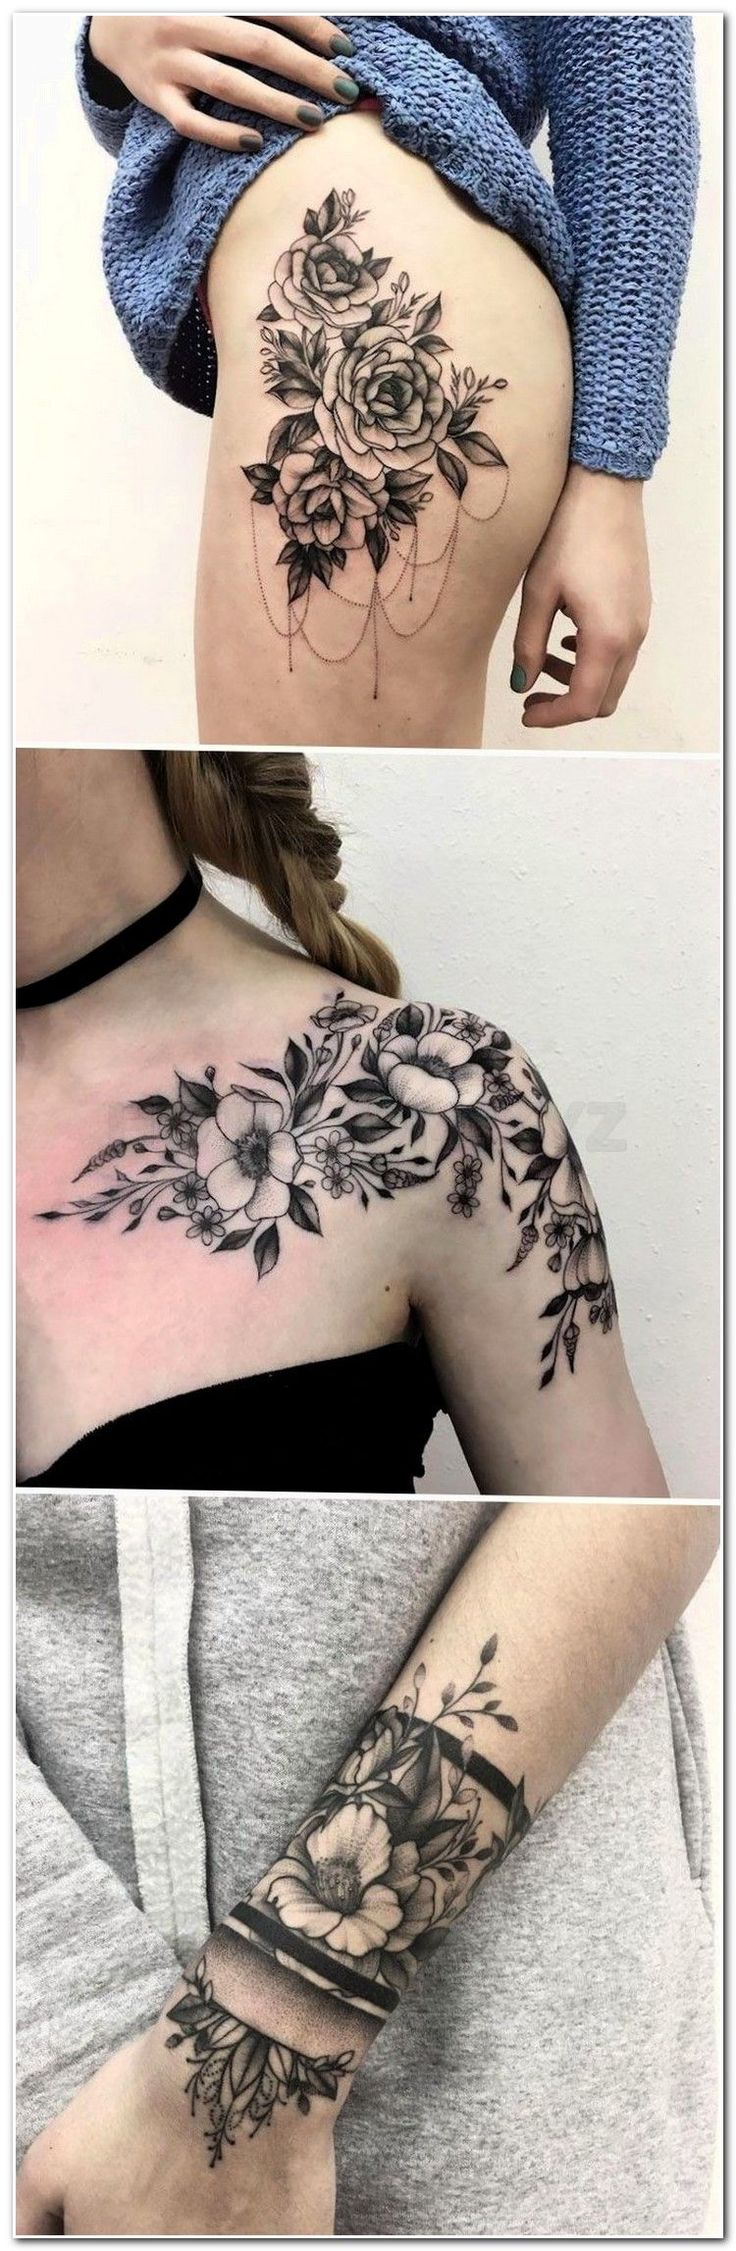 shoulder to arm tattoo design, girl tattoo lower back, tattoos for guys arms, get tattoo ideas, japanese tattoo flower design, cherry blossom foot tatto, neck tat, retro swallow tattoo, hummingbird cherry blossom tattoo, heart tattoos with names design